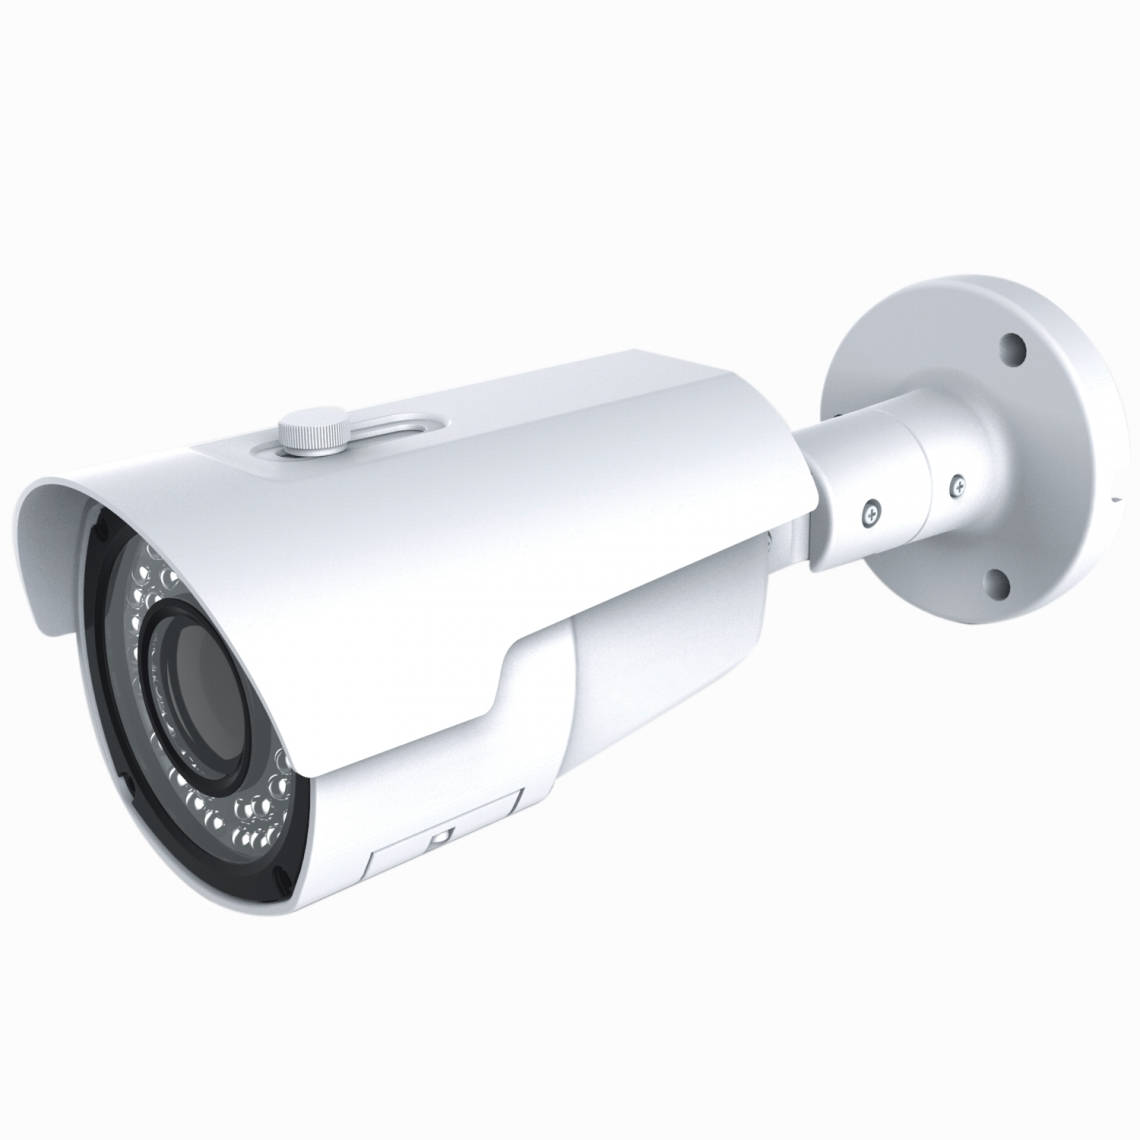 5MP AHD VARIFOCAL CAMERA - TVT86VFAHD/5